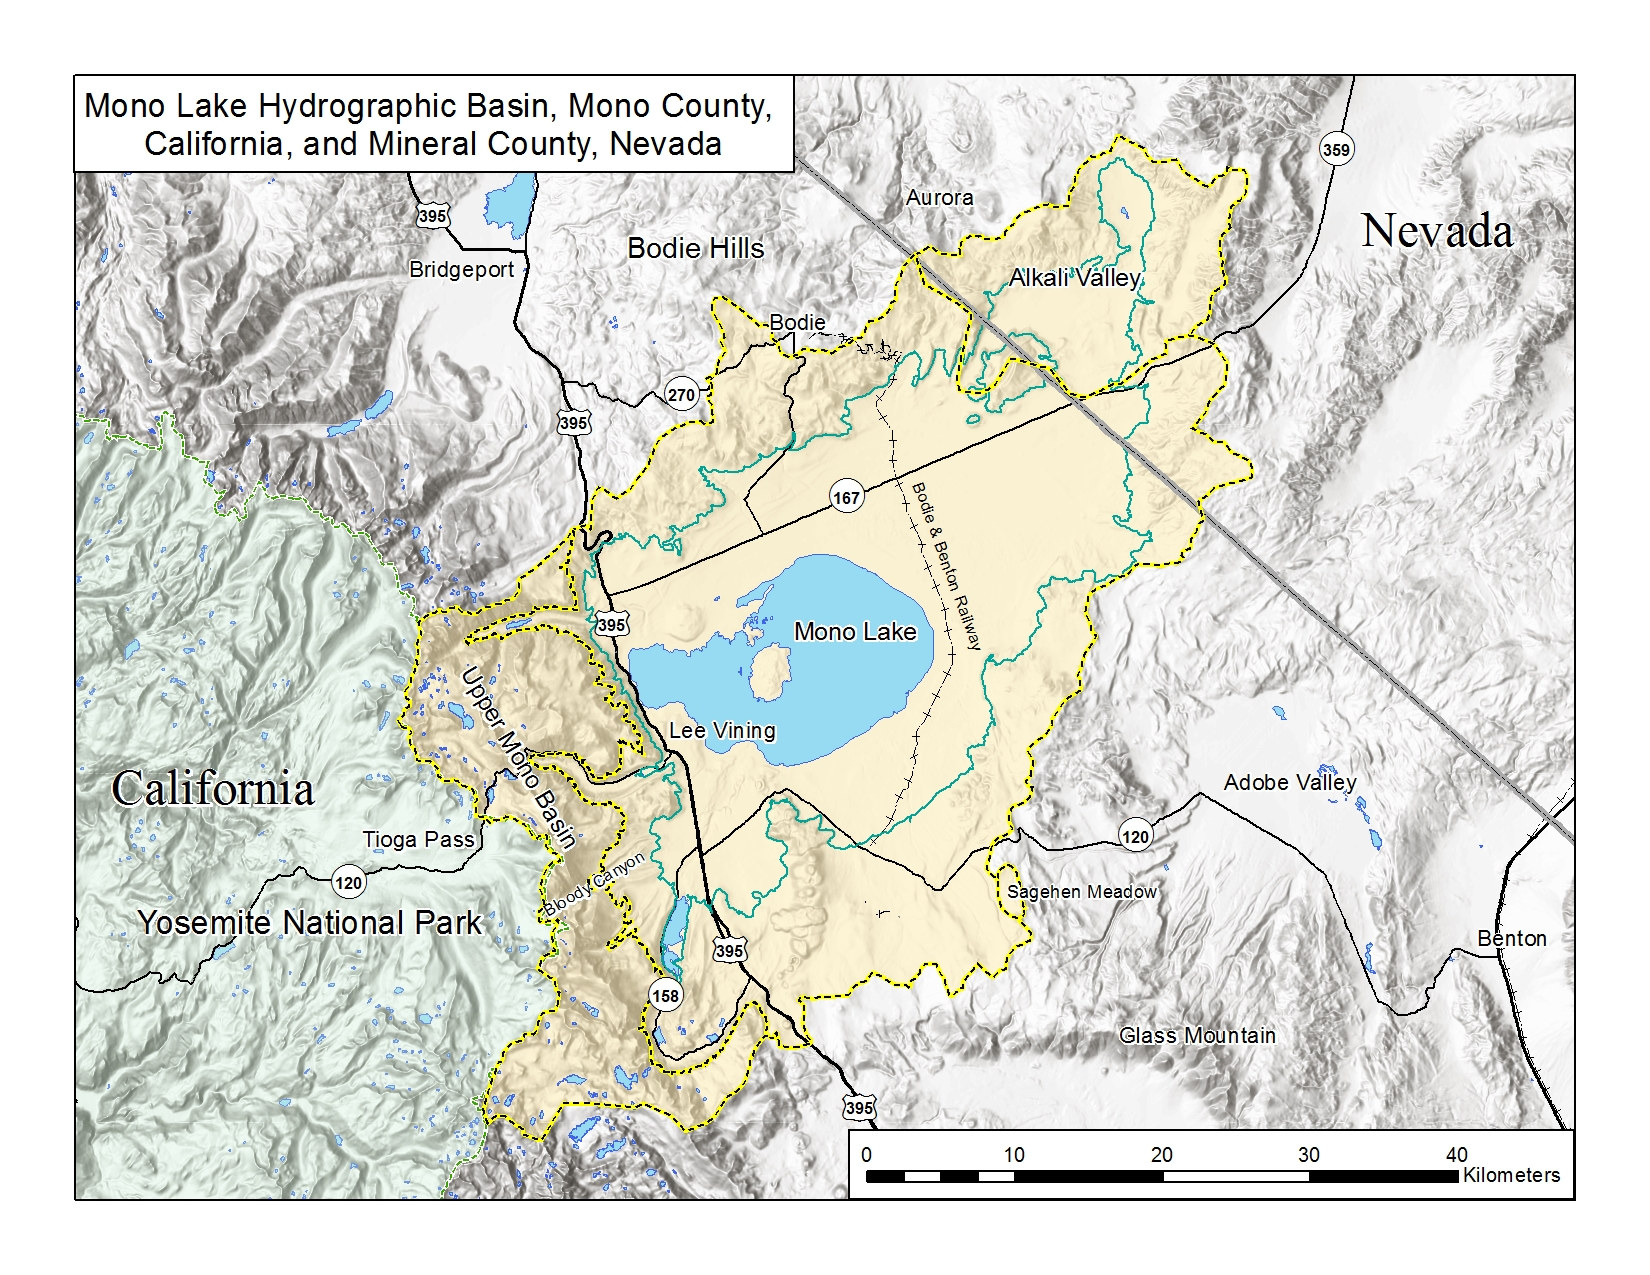 Map, Mono Lake basin, Mono County, California